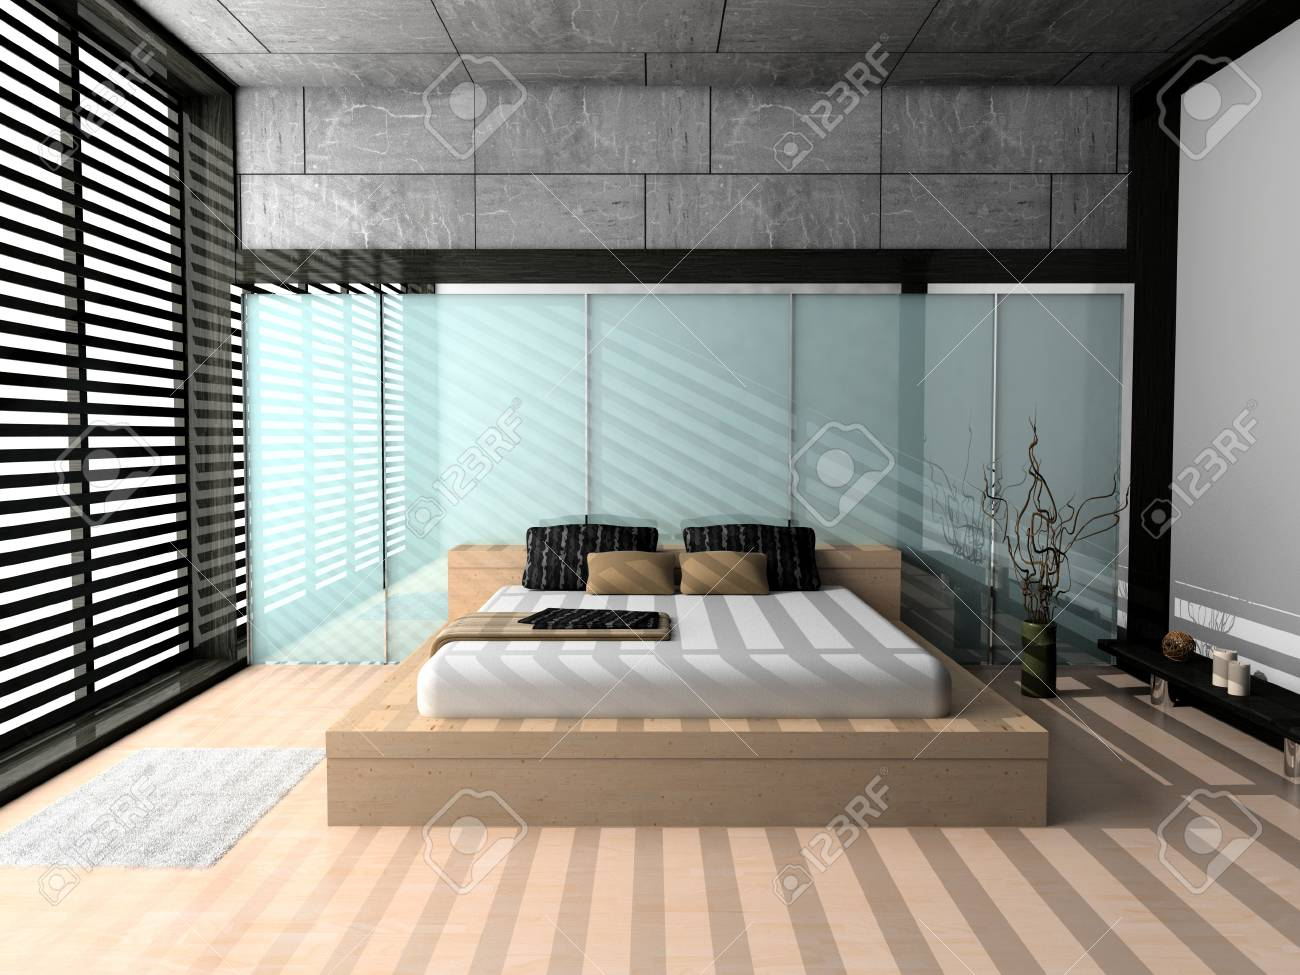 Modern interior of a bedroom room 3D Stock Photo - 23000566